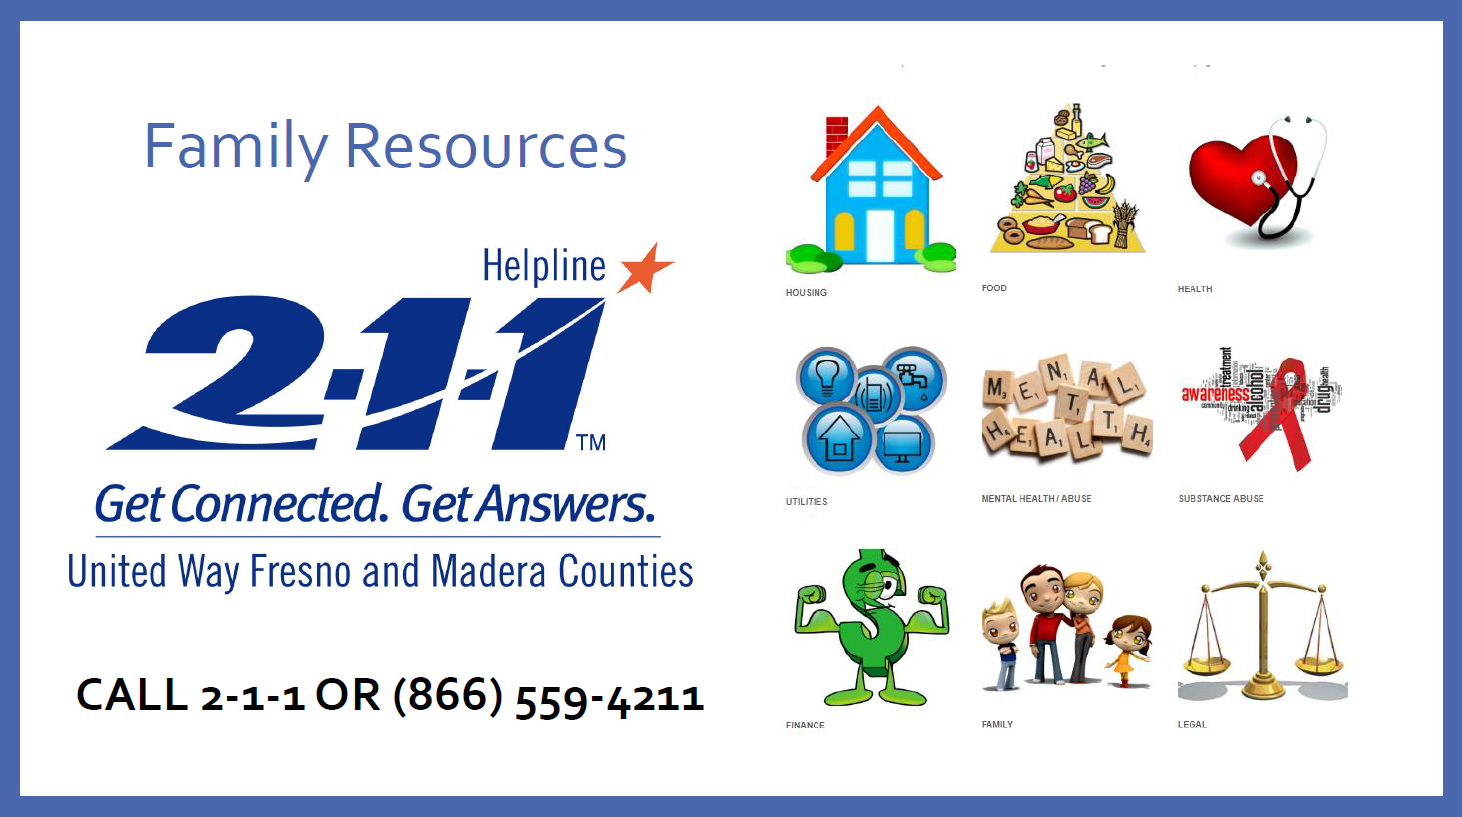 Family Resources - Call 211